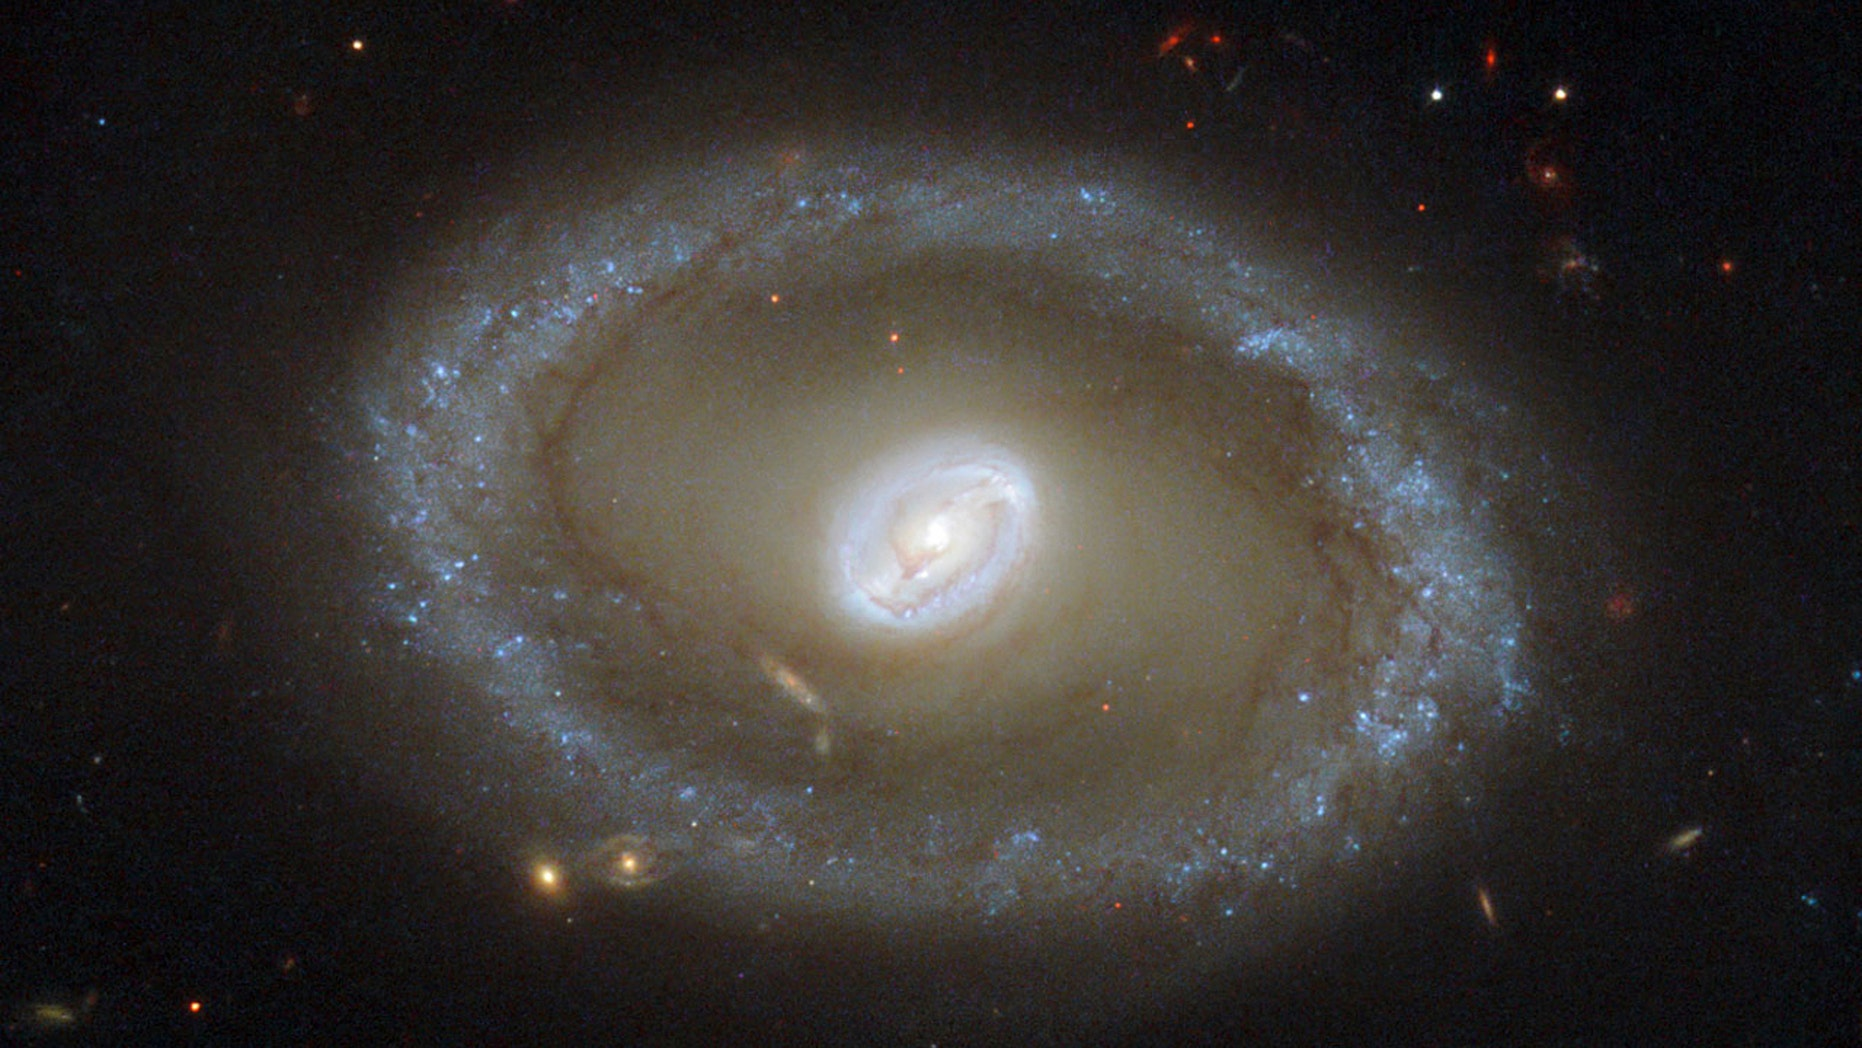 A galaxy known as NGC 3081 located over 86 million light-years from Earth is seen in an undated NASA/ESA Hubble Space Telescope image.